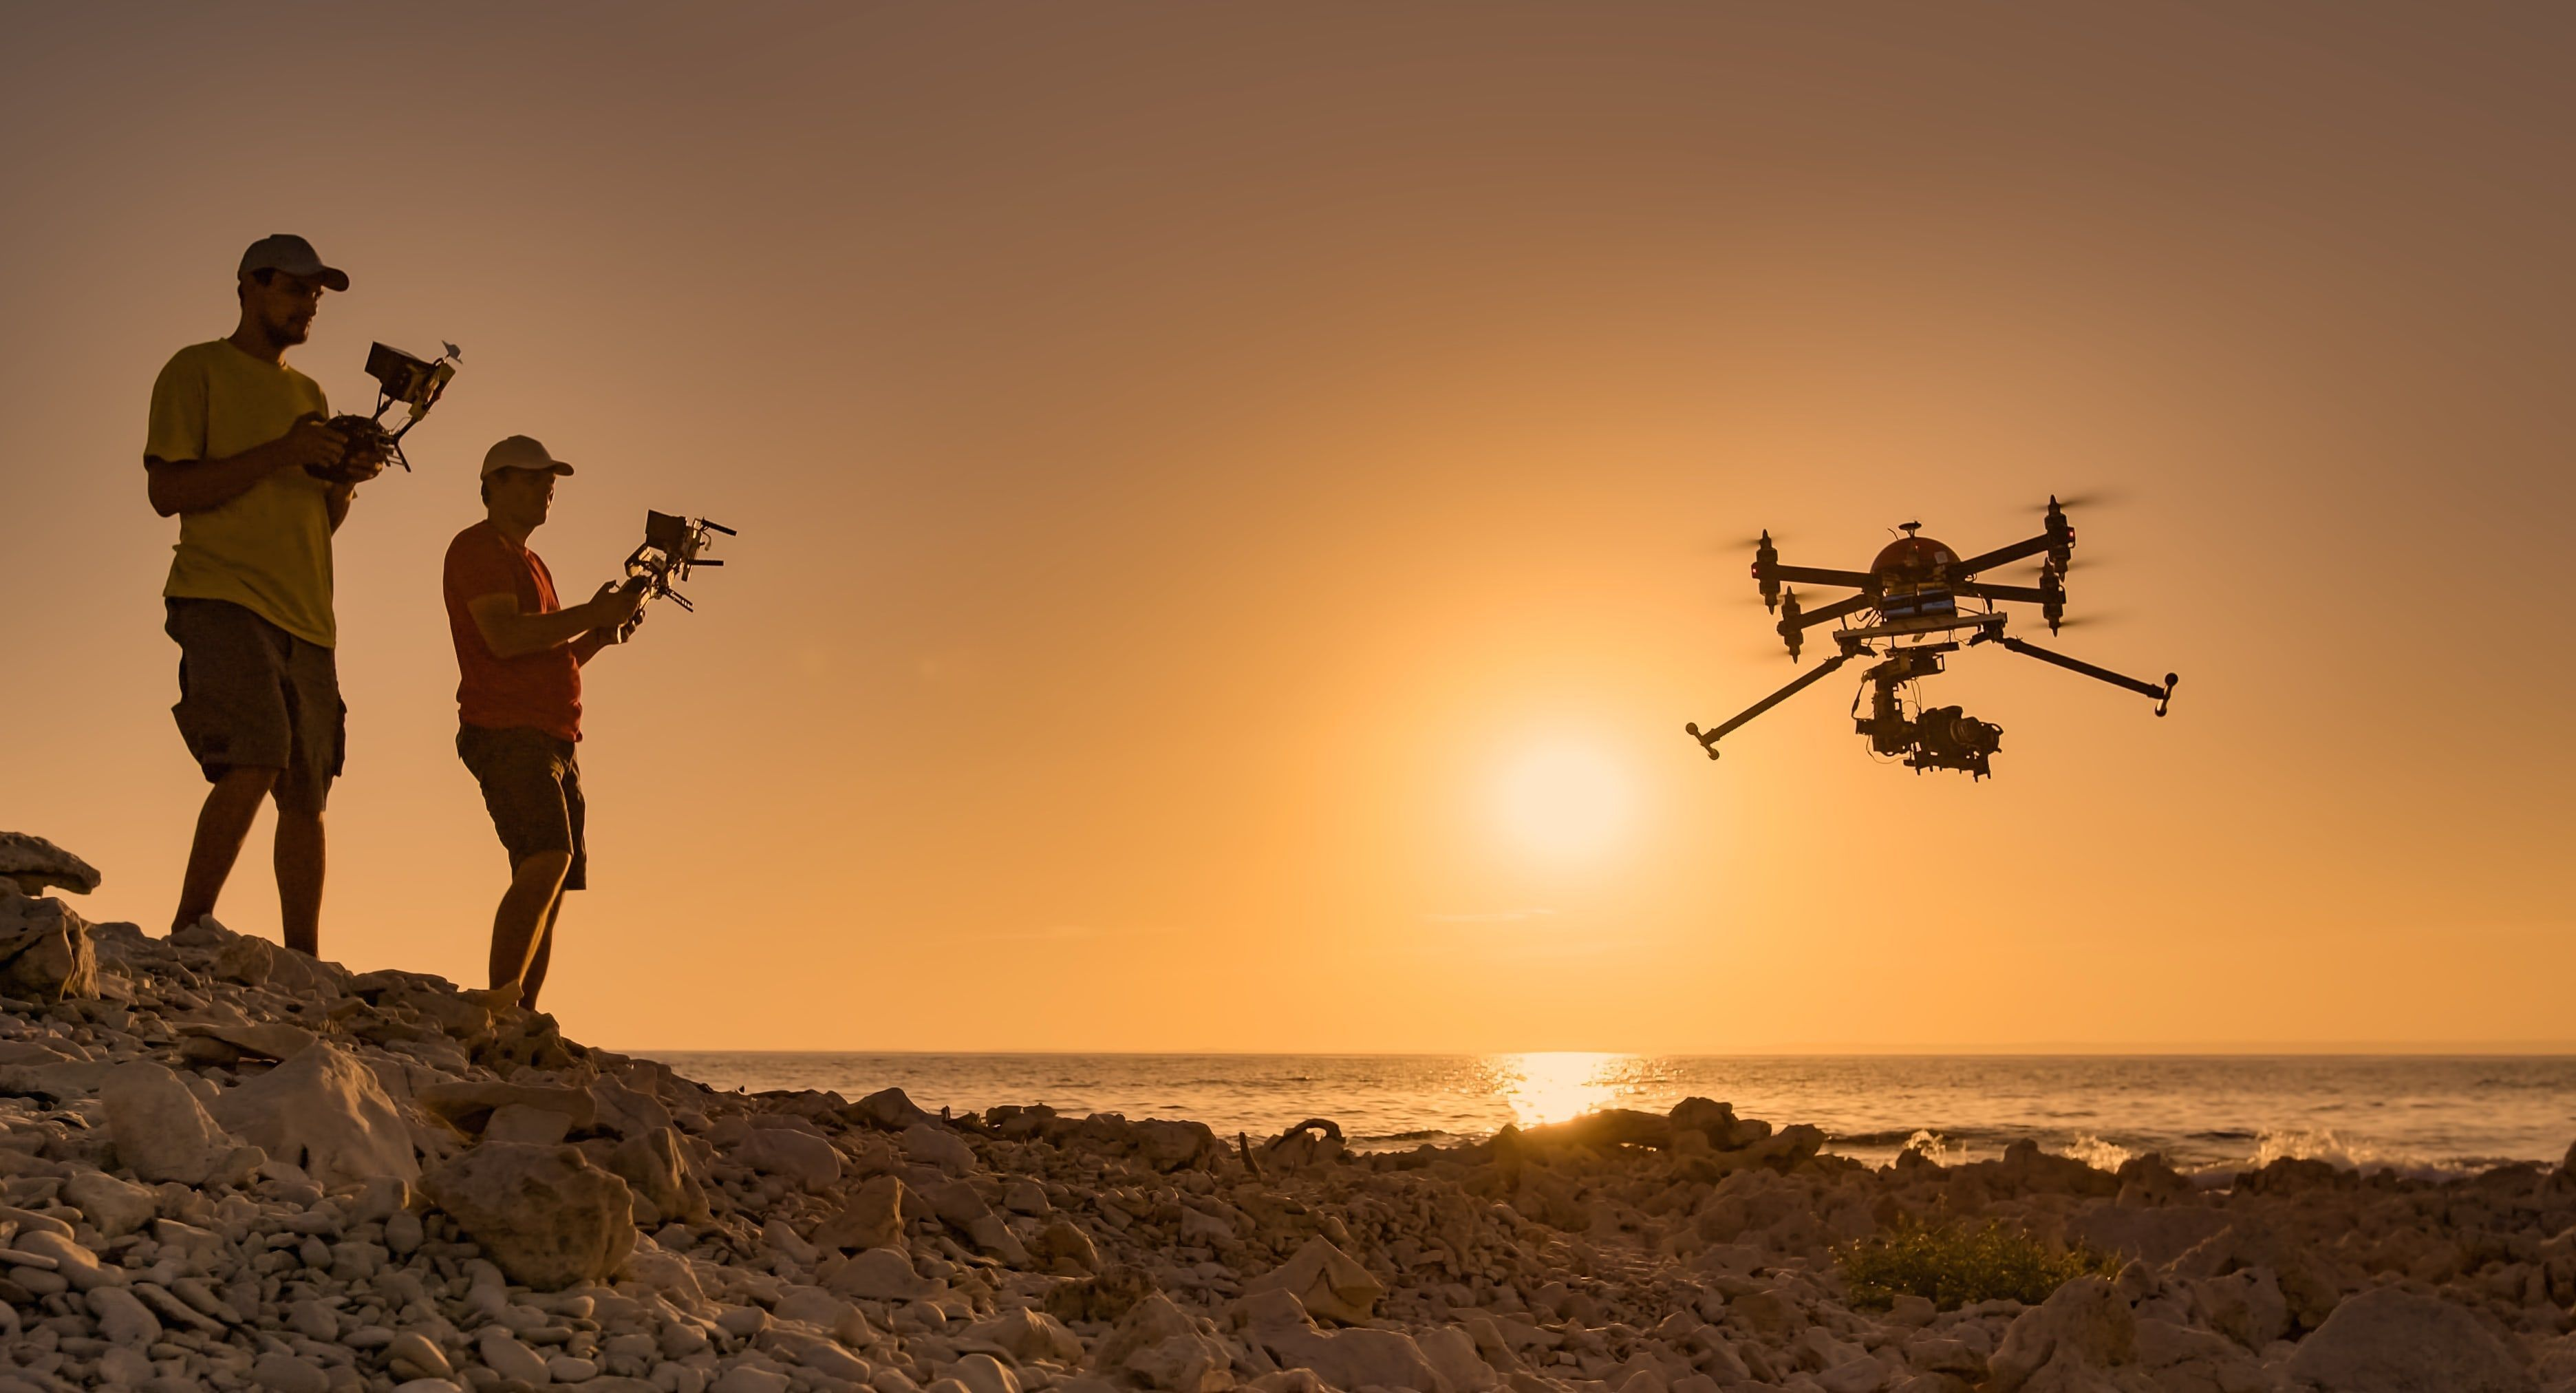 drone photography business image #dronephotography